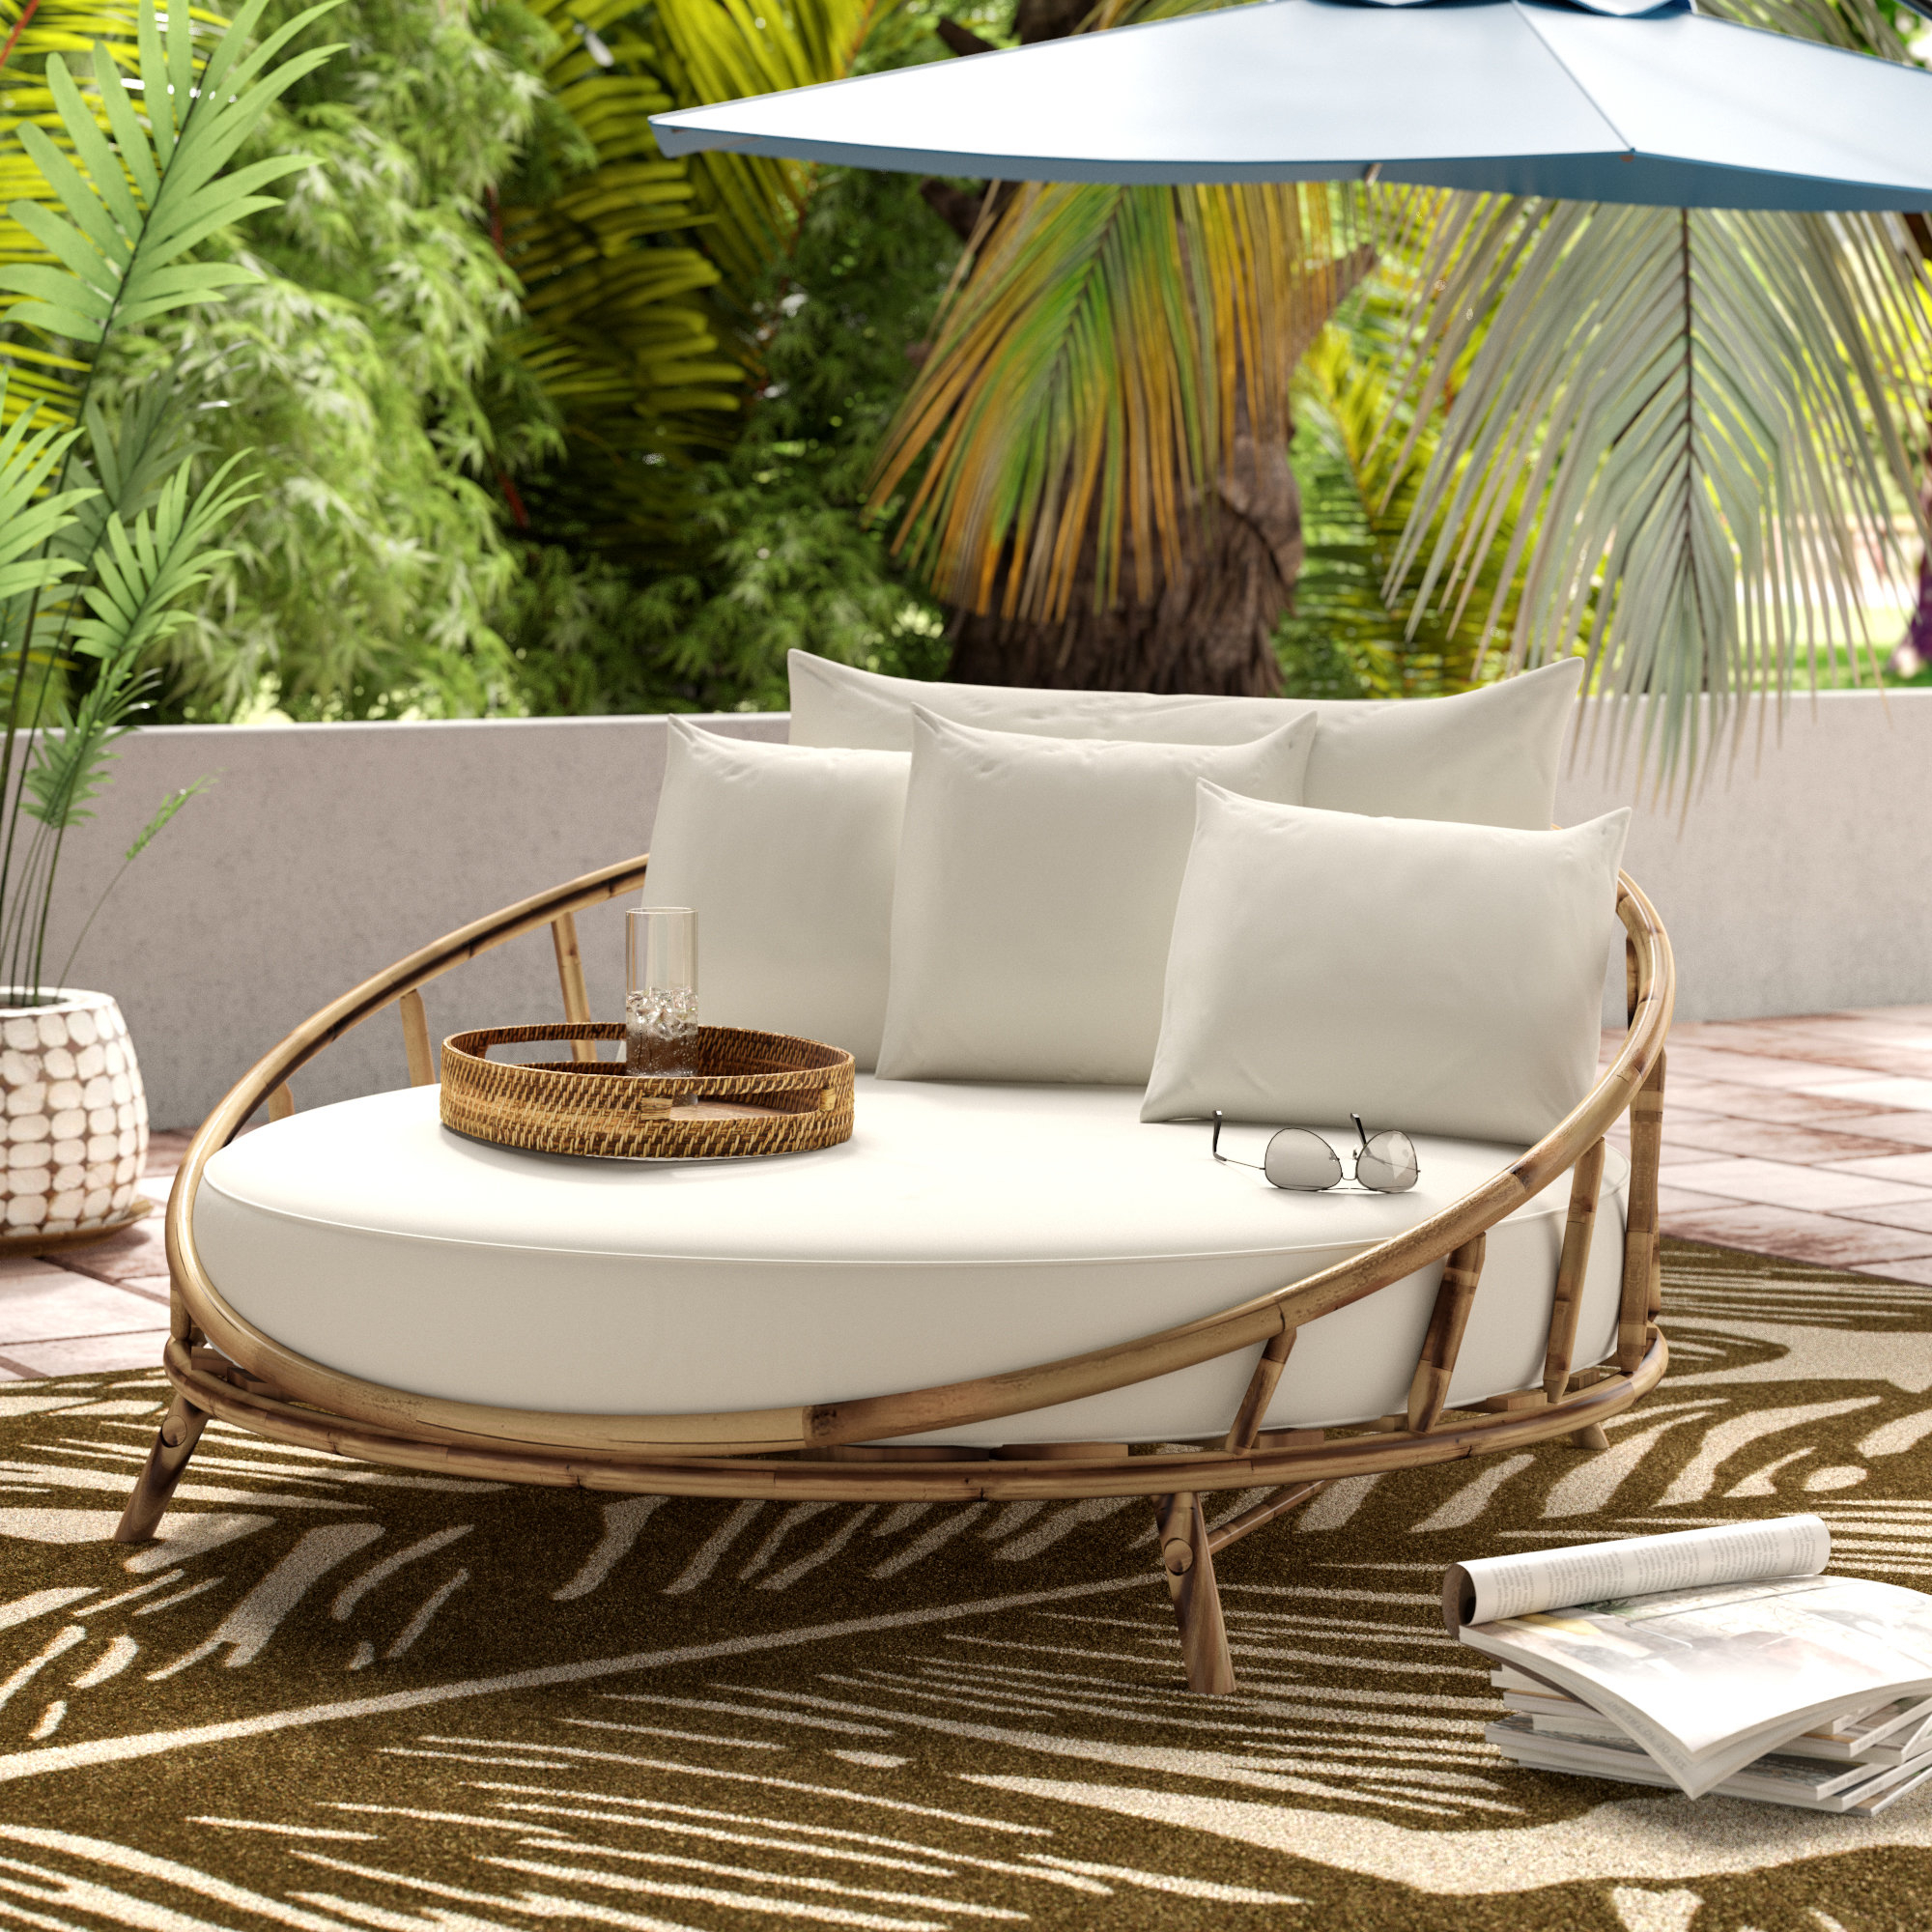 Roush Teak Patio Daybeds With Cushions In Most Current Olu Bamboo Large Round Patio Daybed With Cushions (View 14 of 20)